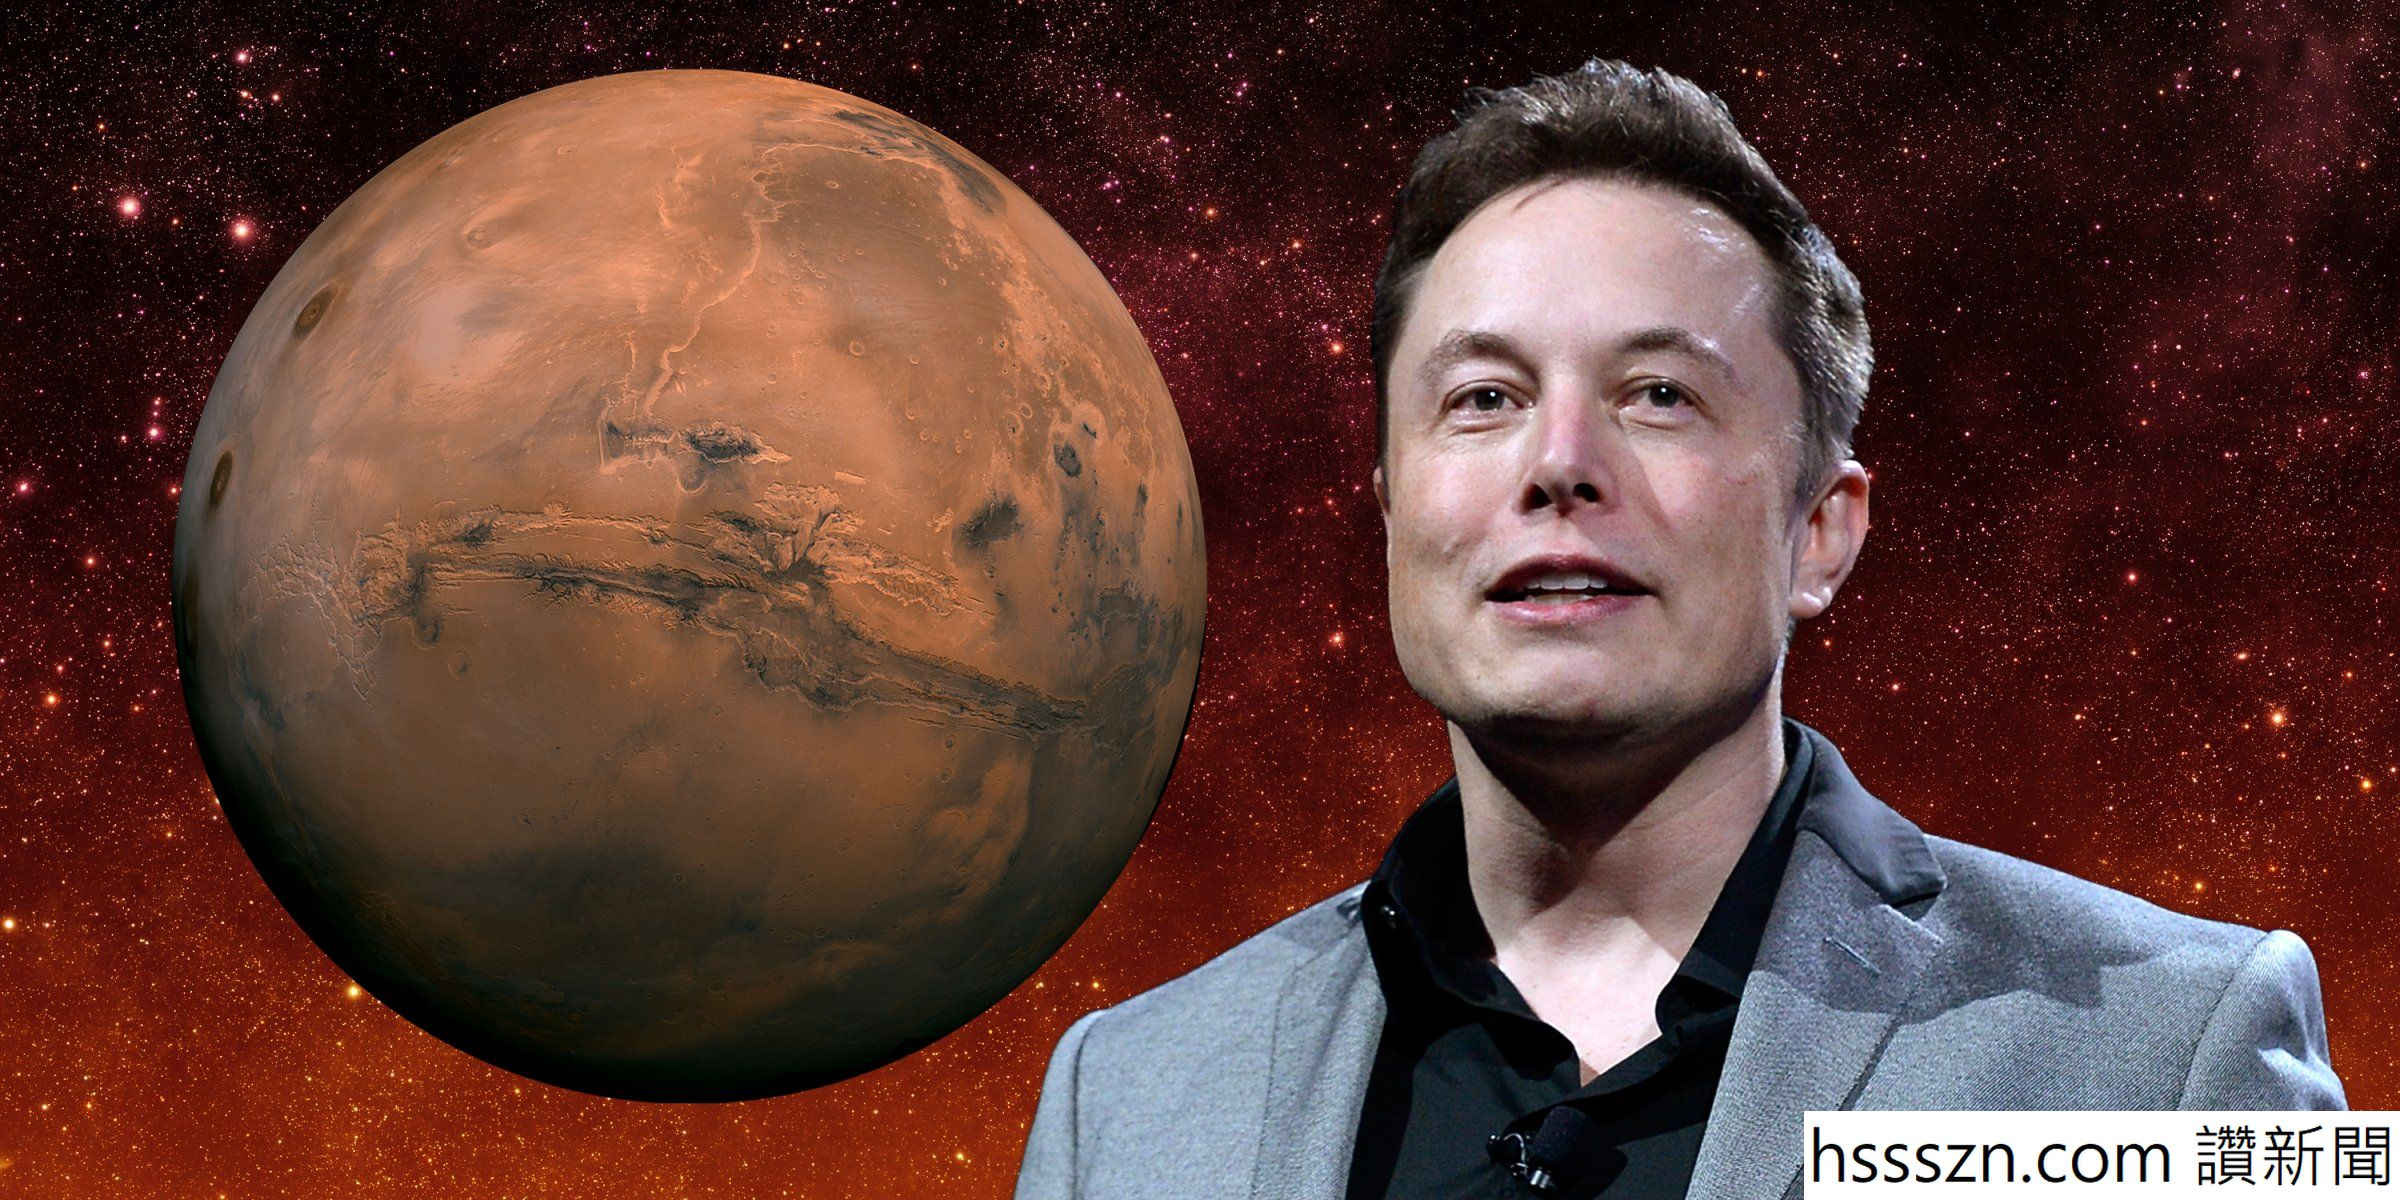 elon-musk-mars-colonization-spacex-nasa-getty-shutterstock-business-insider-illustration-2x1_2400_1200